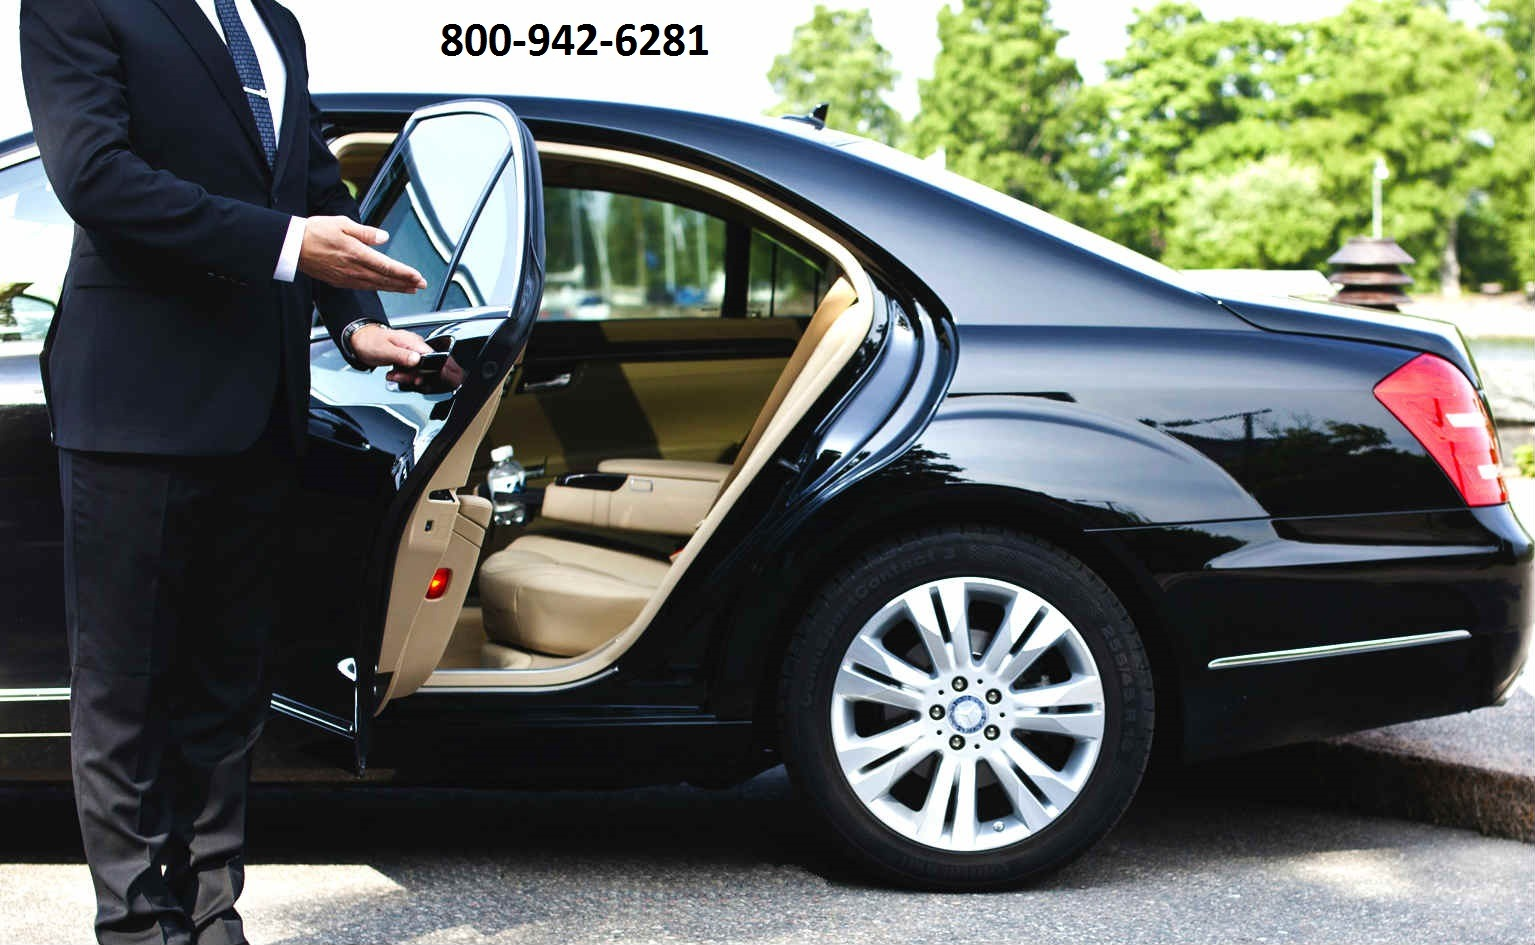 Washington DC Limo Services